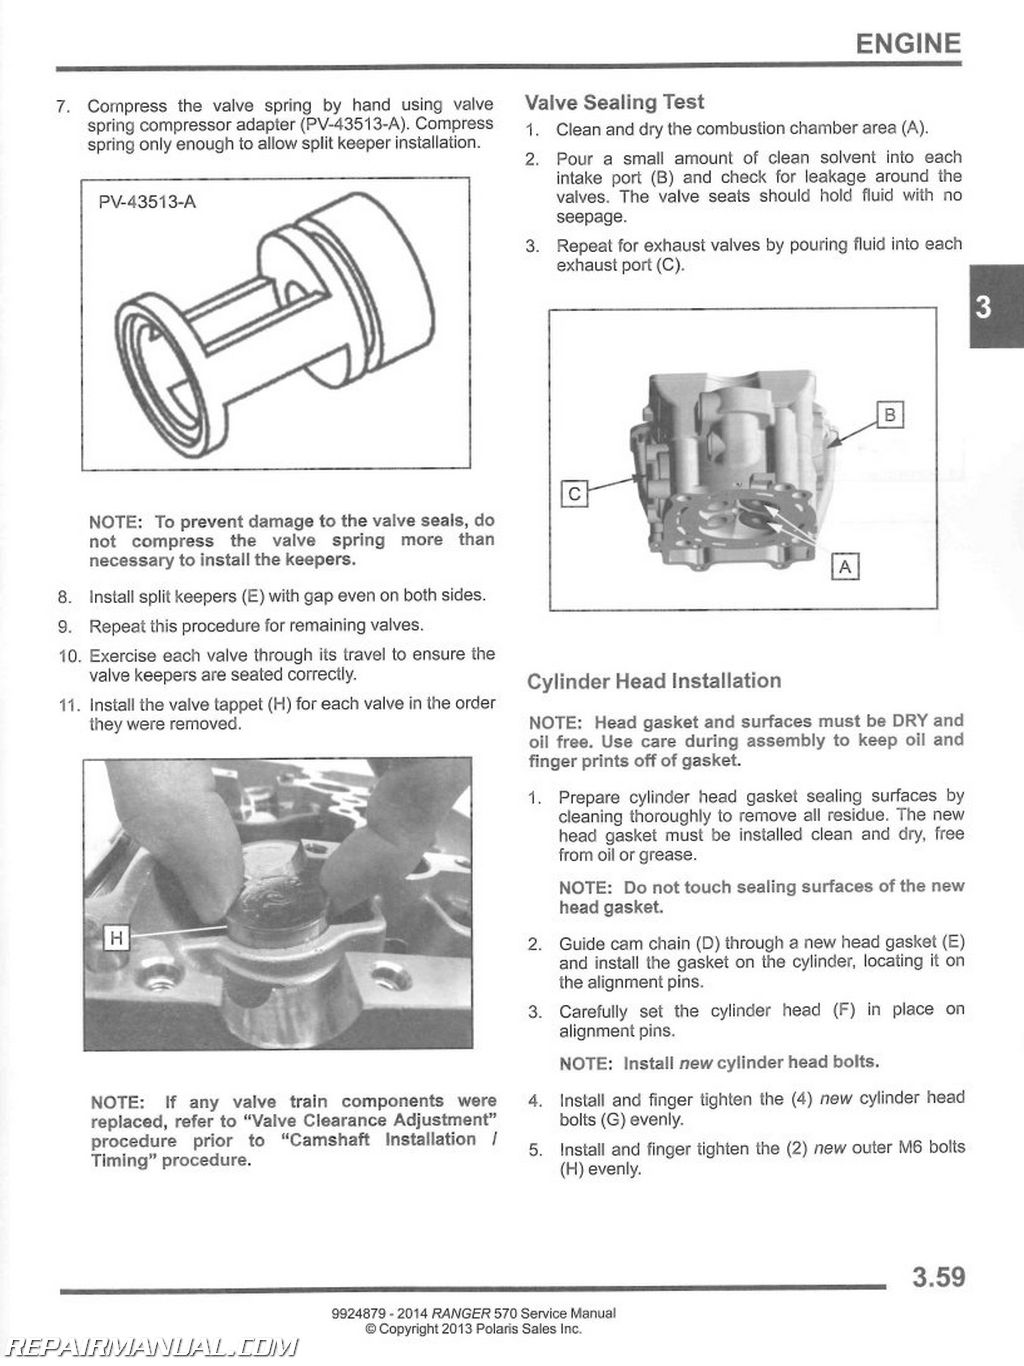 Wiring Diagram For 2012 Polaris 500 Sportsman Content Resource Of Ho Wire 2014 Ranger 570 Side By Service Manual 2004 2001